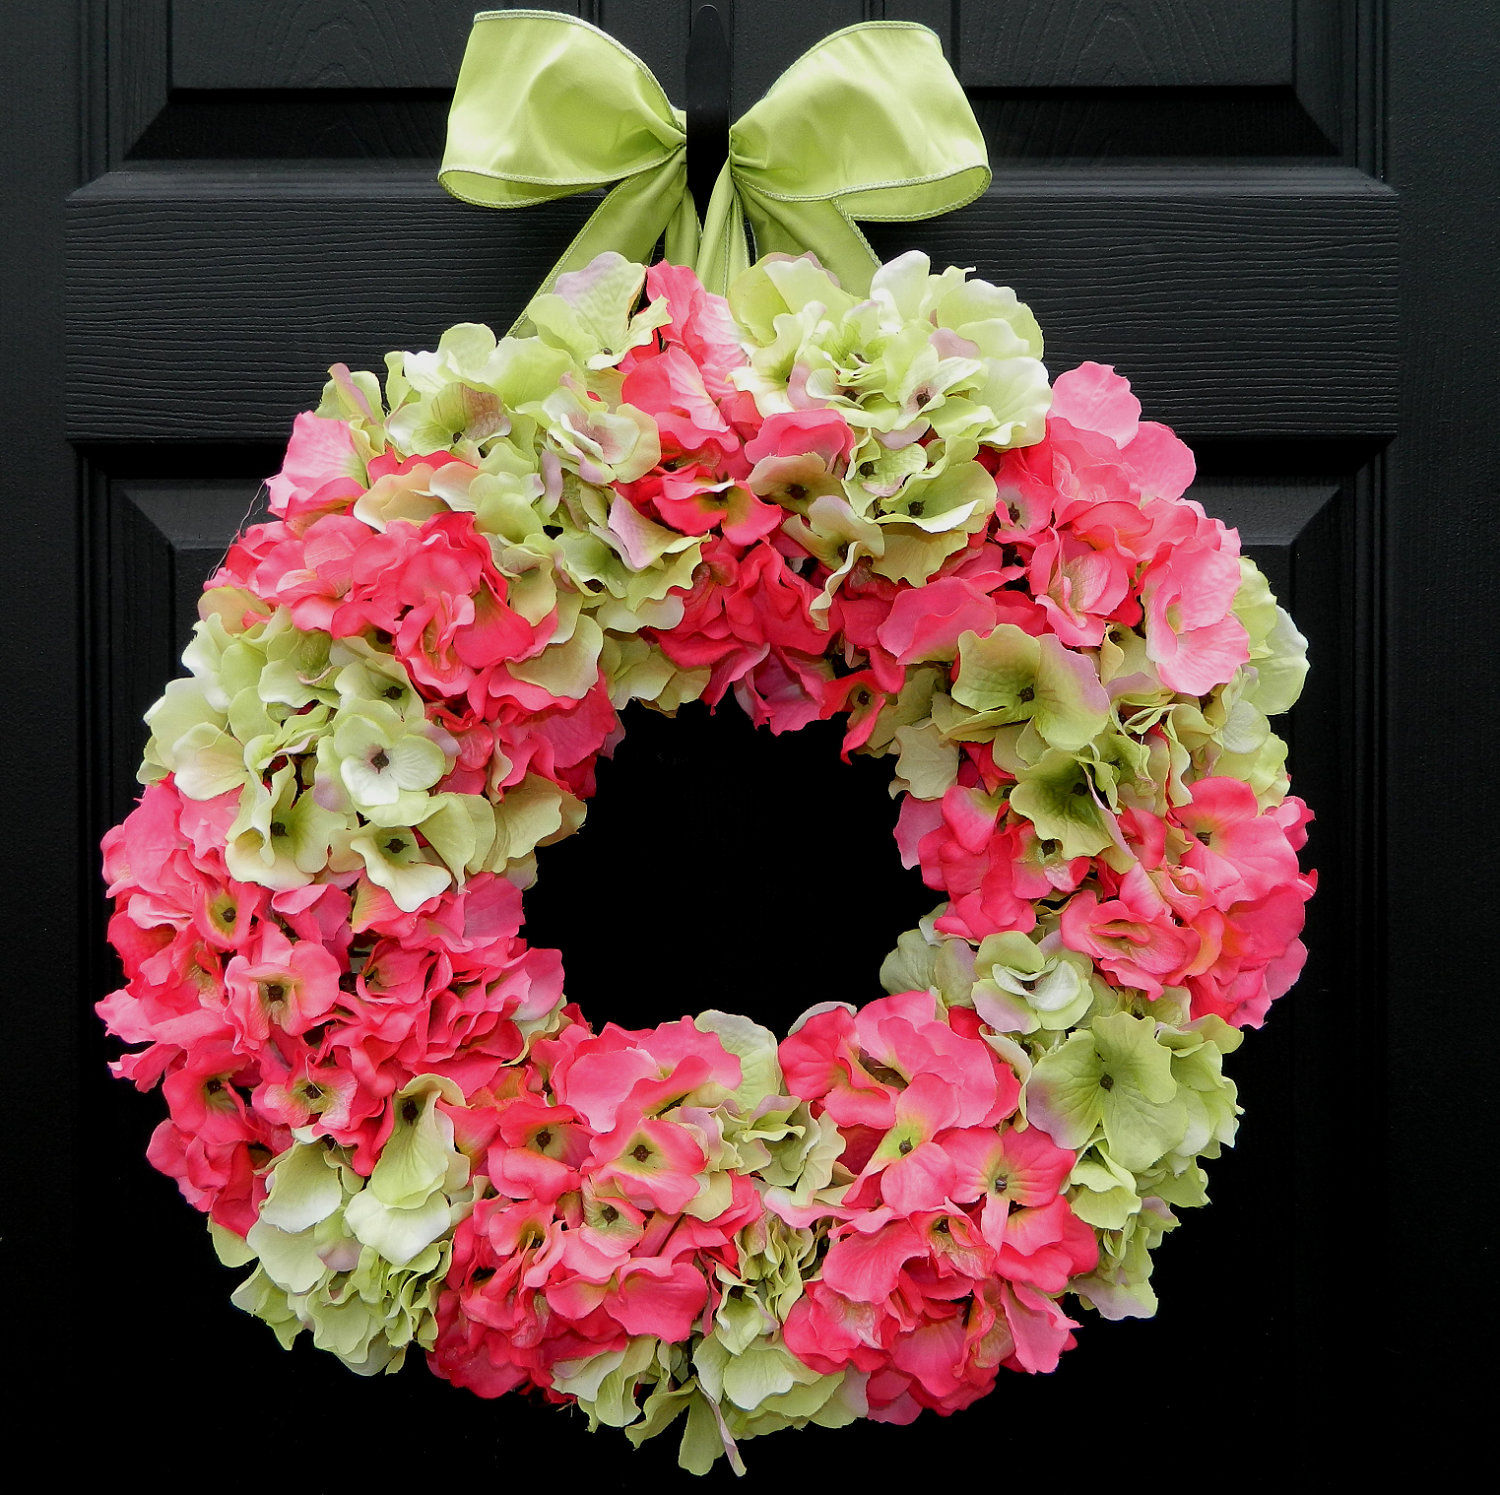 Hydrangea Wreath: Spring-Summer Hydrangea Wreath Pictures, Photos, And